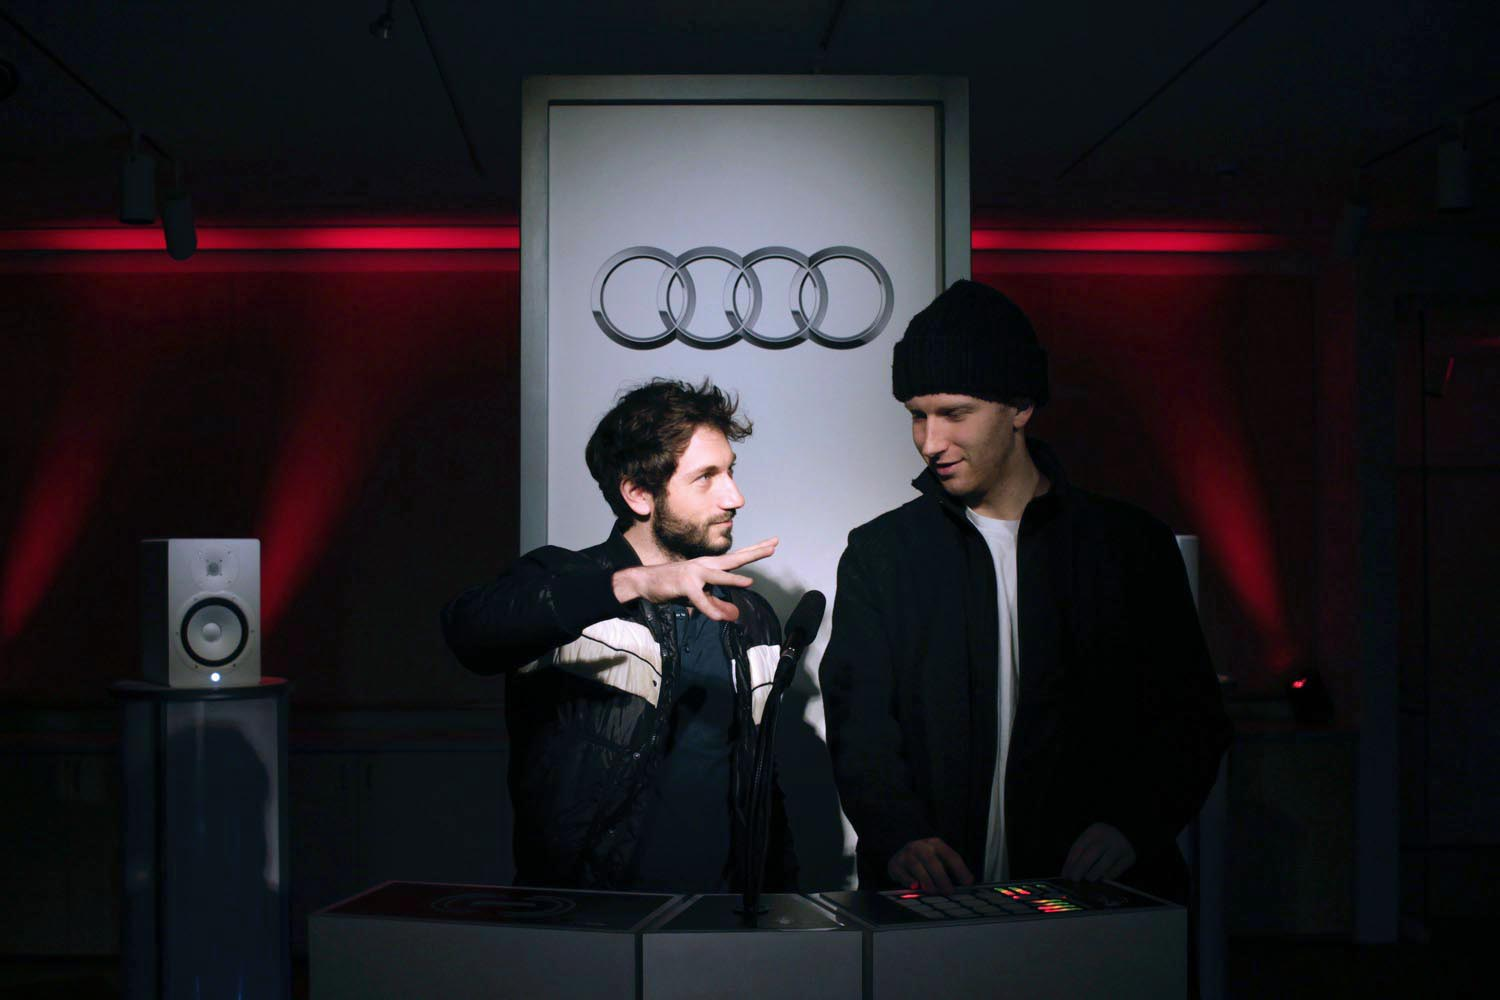 Audi, Whitney Museum, Meatpacking District, NYC, PMK BNC, Animal Collective, Music, Sound, Installation, Immersive, Interactive, Social Media, Invisible North, Creative, Agency, Brand, Experiences, Car, Museum, Culture, Experiential, Promotion, Production, Design, Video